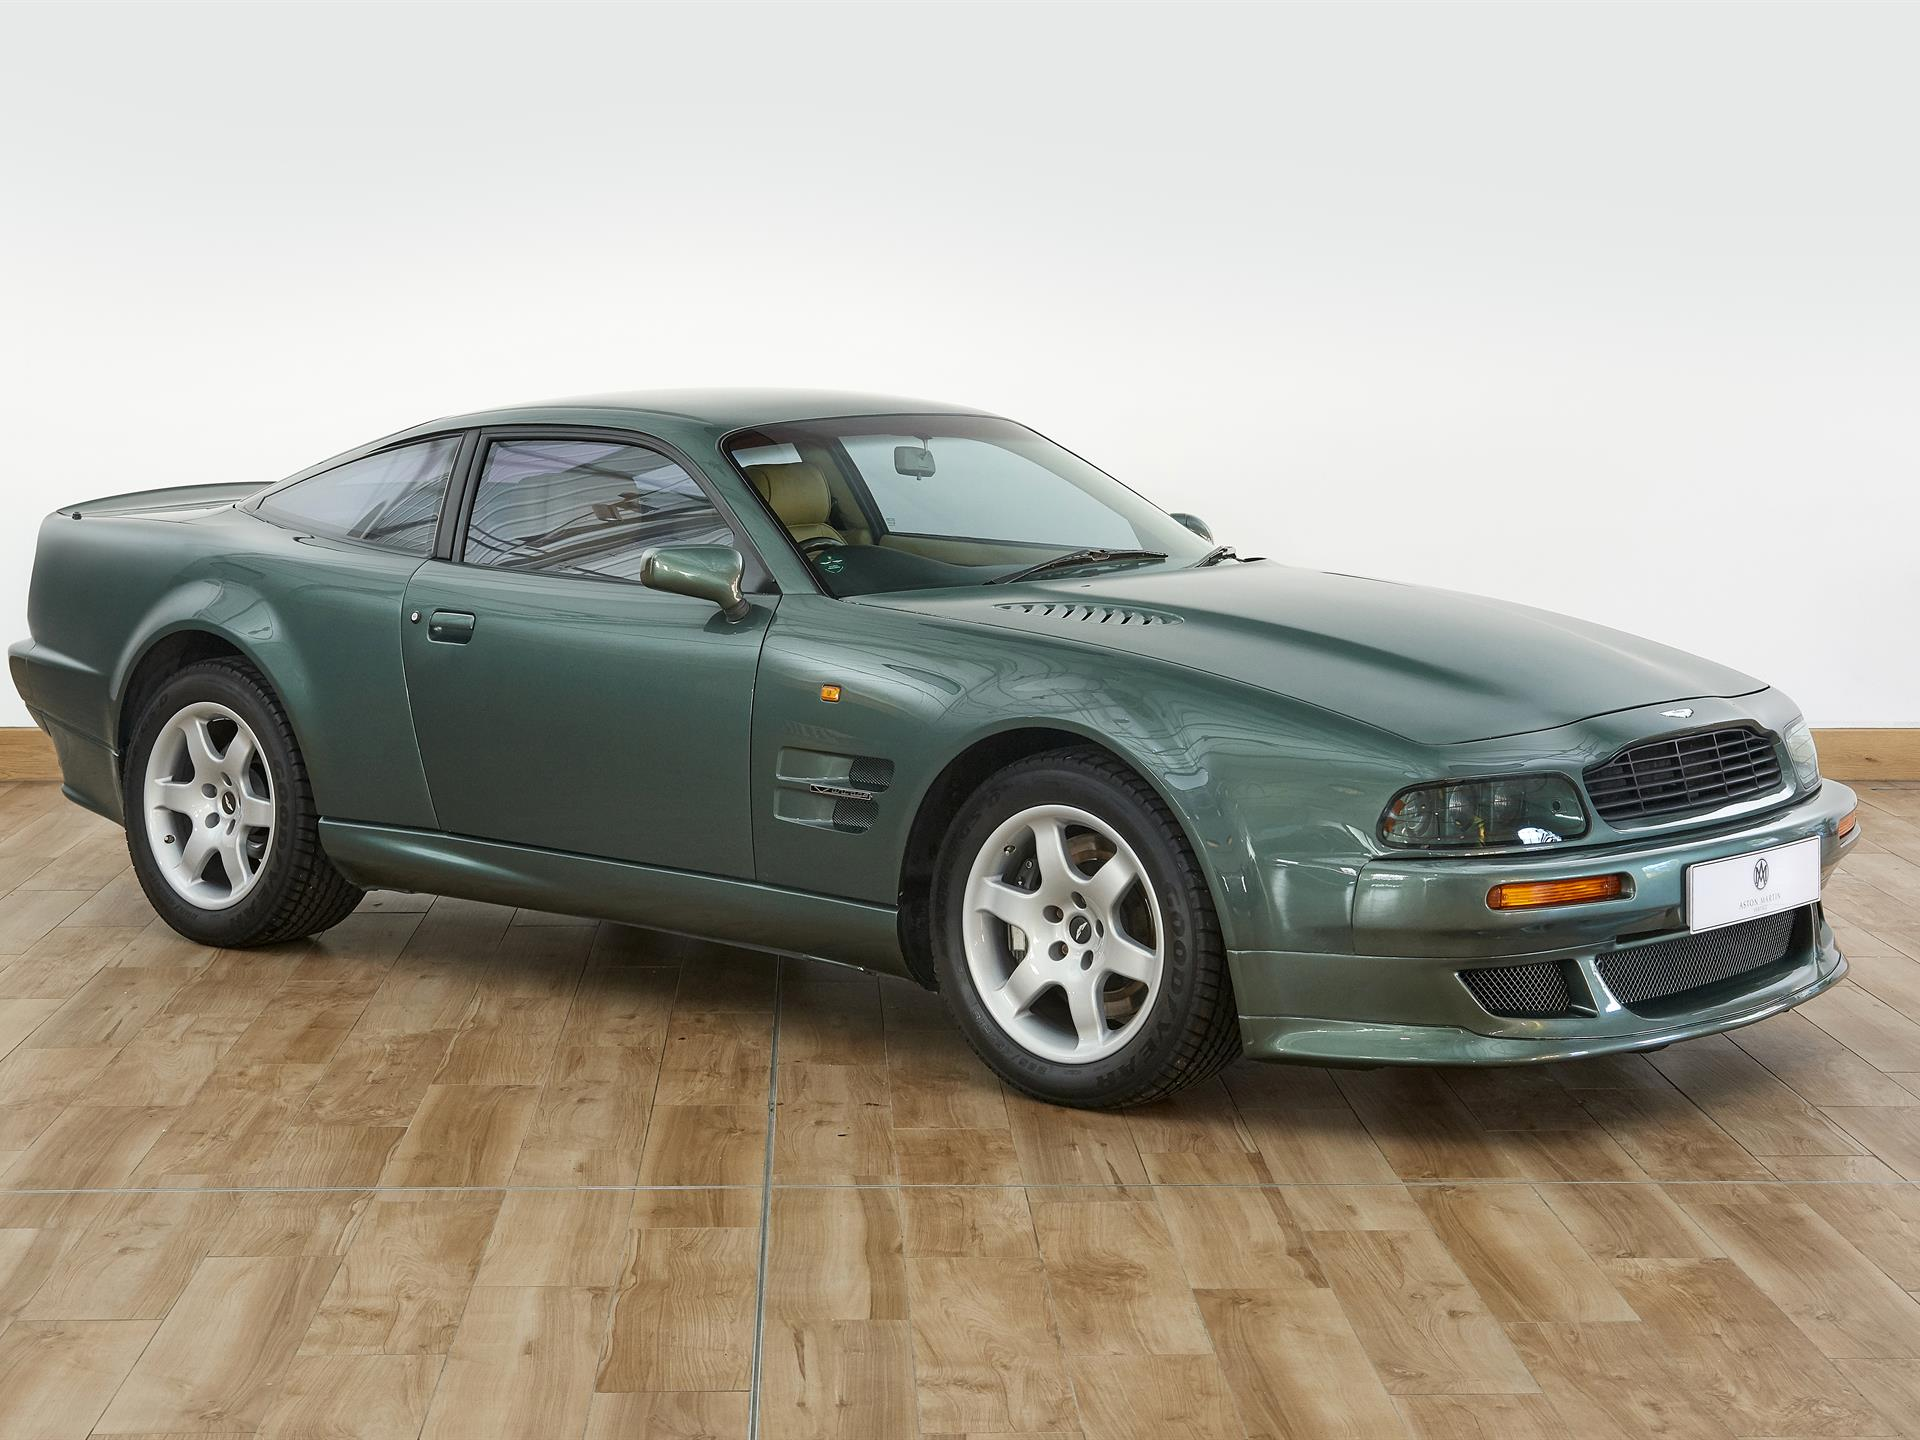 Aston Martin V8 Vantage V550 Coupe For Sale Aston Martin Works